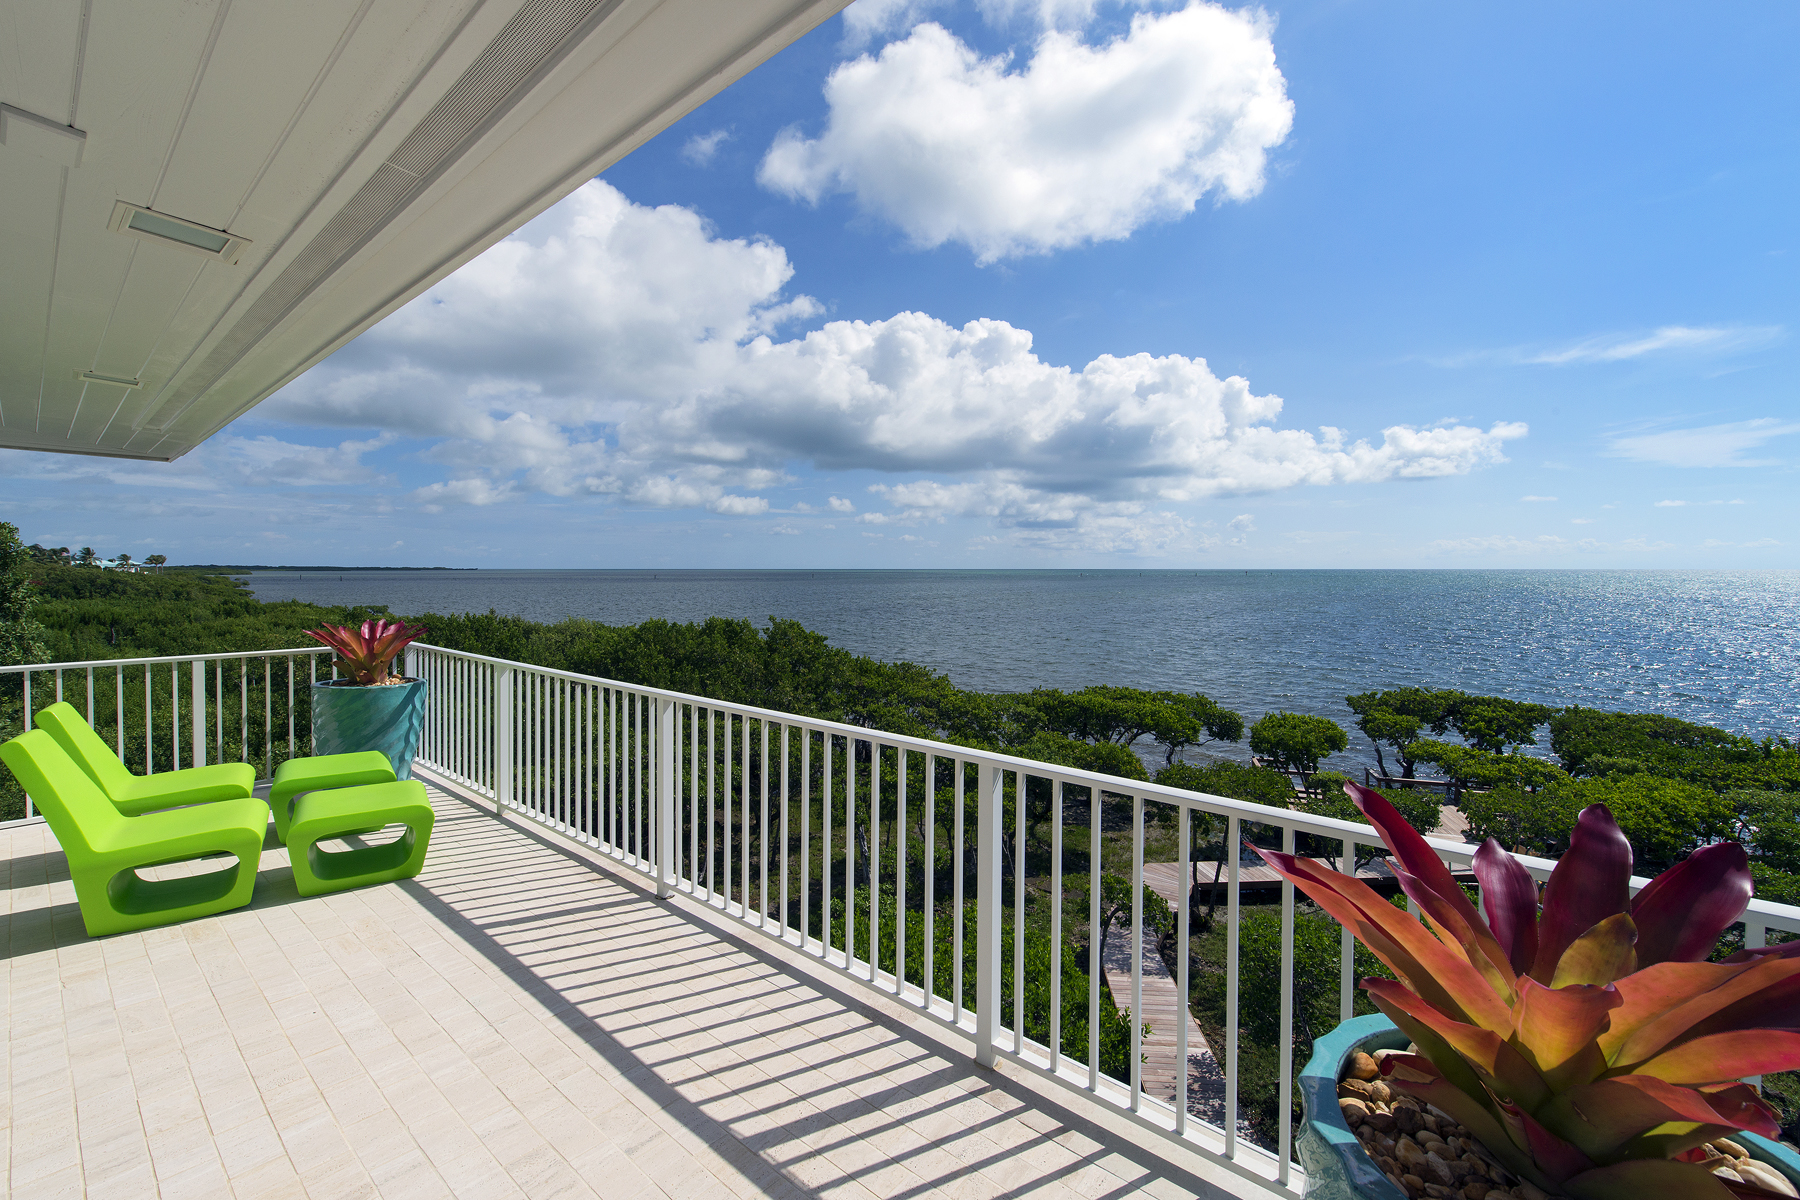 Tek Ailelik Ev için Satış at Captivating Ocean Front Views at Ocean Reef 15 Sunrise Cay Drive Ocean Reef Community, Key Largo, Florida, 33037 Amerika Birleşik Devletleri